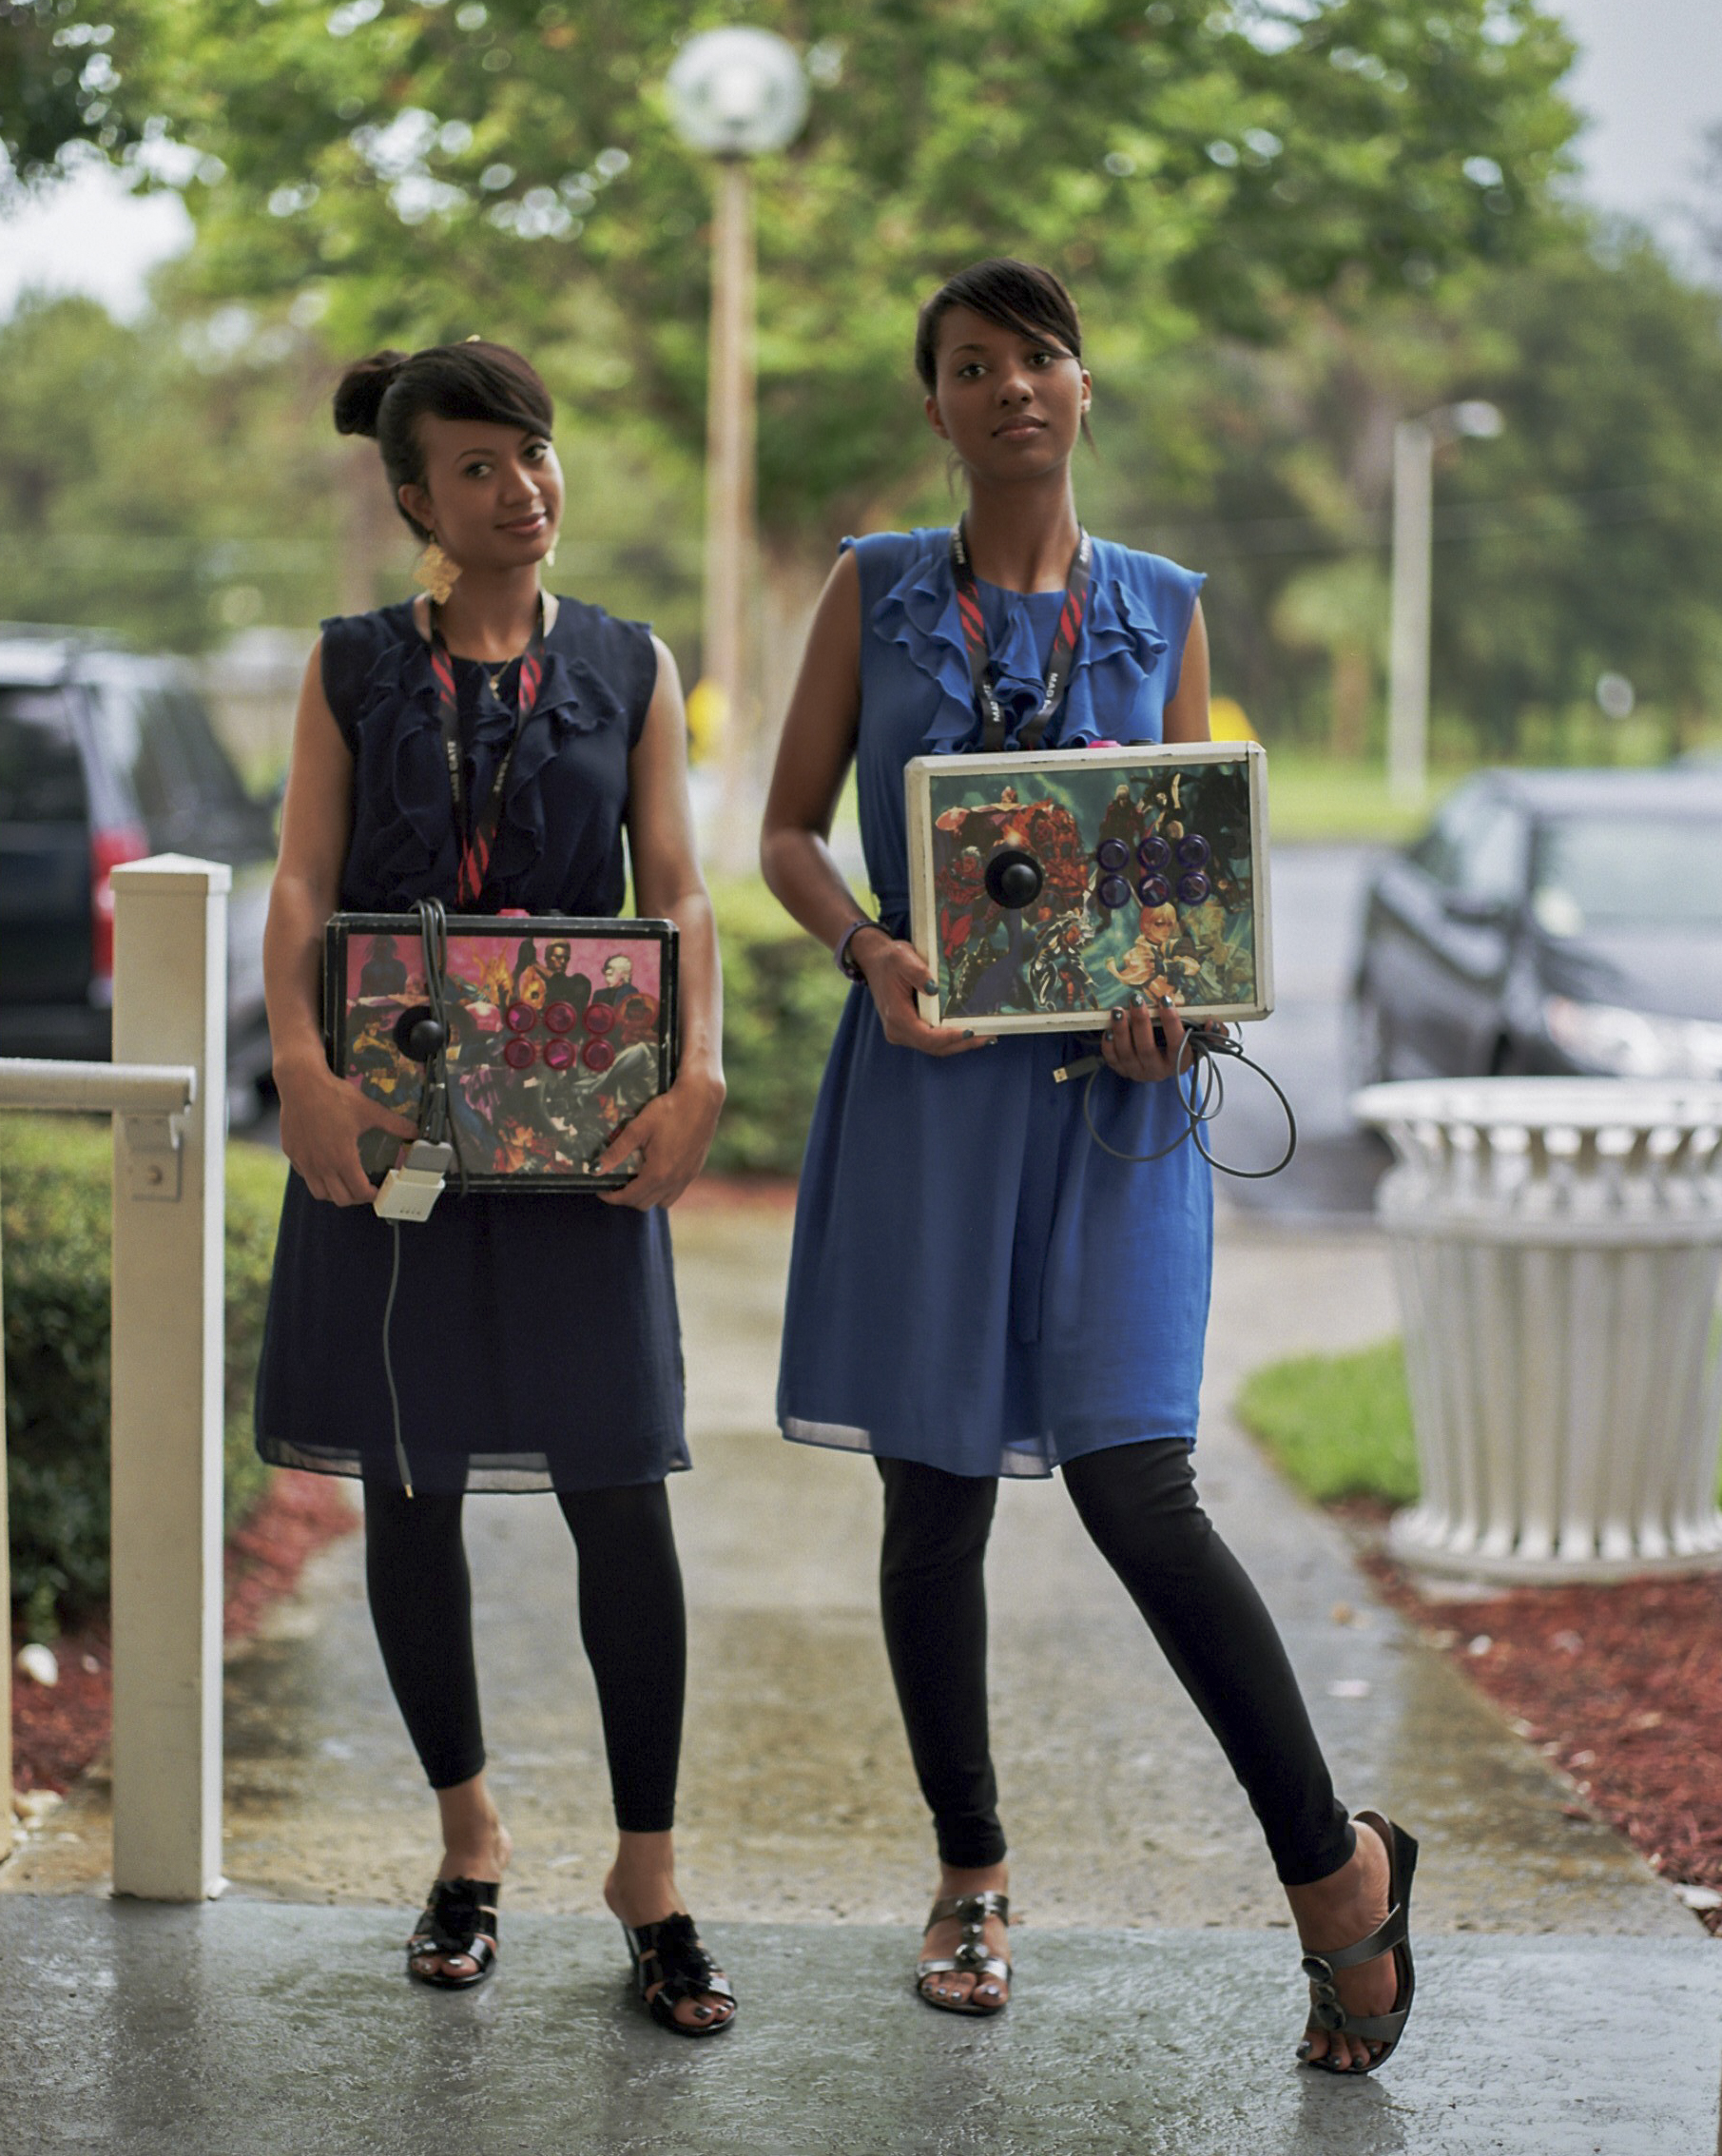 "Lina Crawford and Etta ""Abare Ky"" Crawford with their custom-made arcade sticks. Originally from Hawaii but currently residing in Arizona, the twin sisters have been longtime competitors in fighting games."